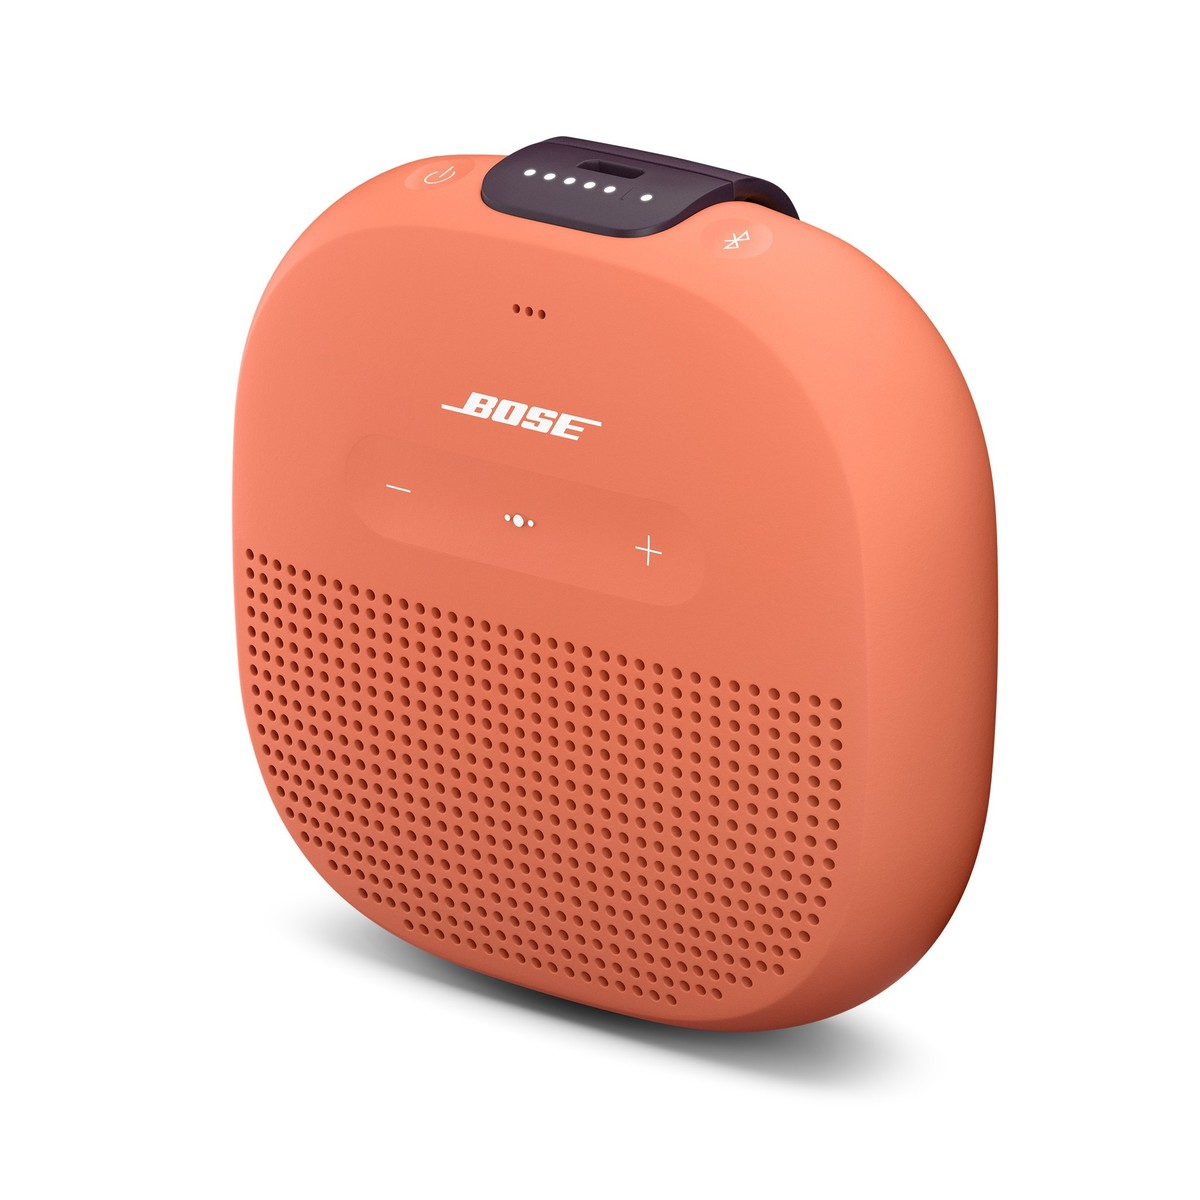 Side view of Bose's SoundLink Micro Bluetooth speaker in orange against a white background